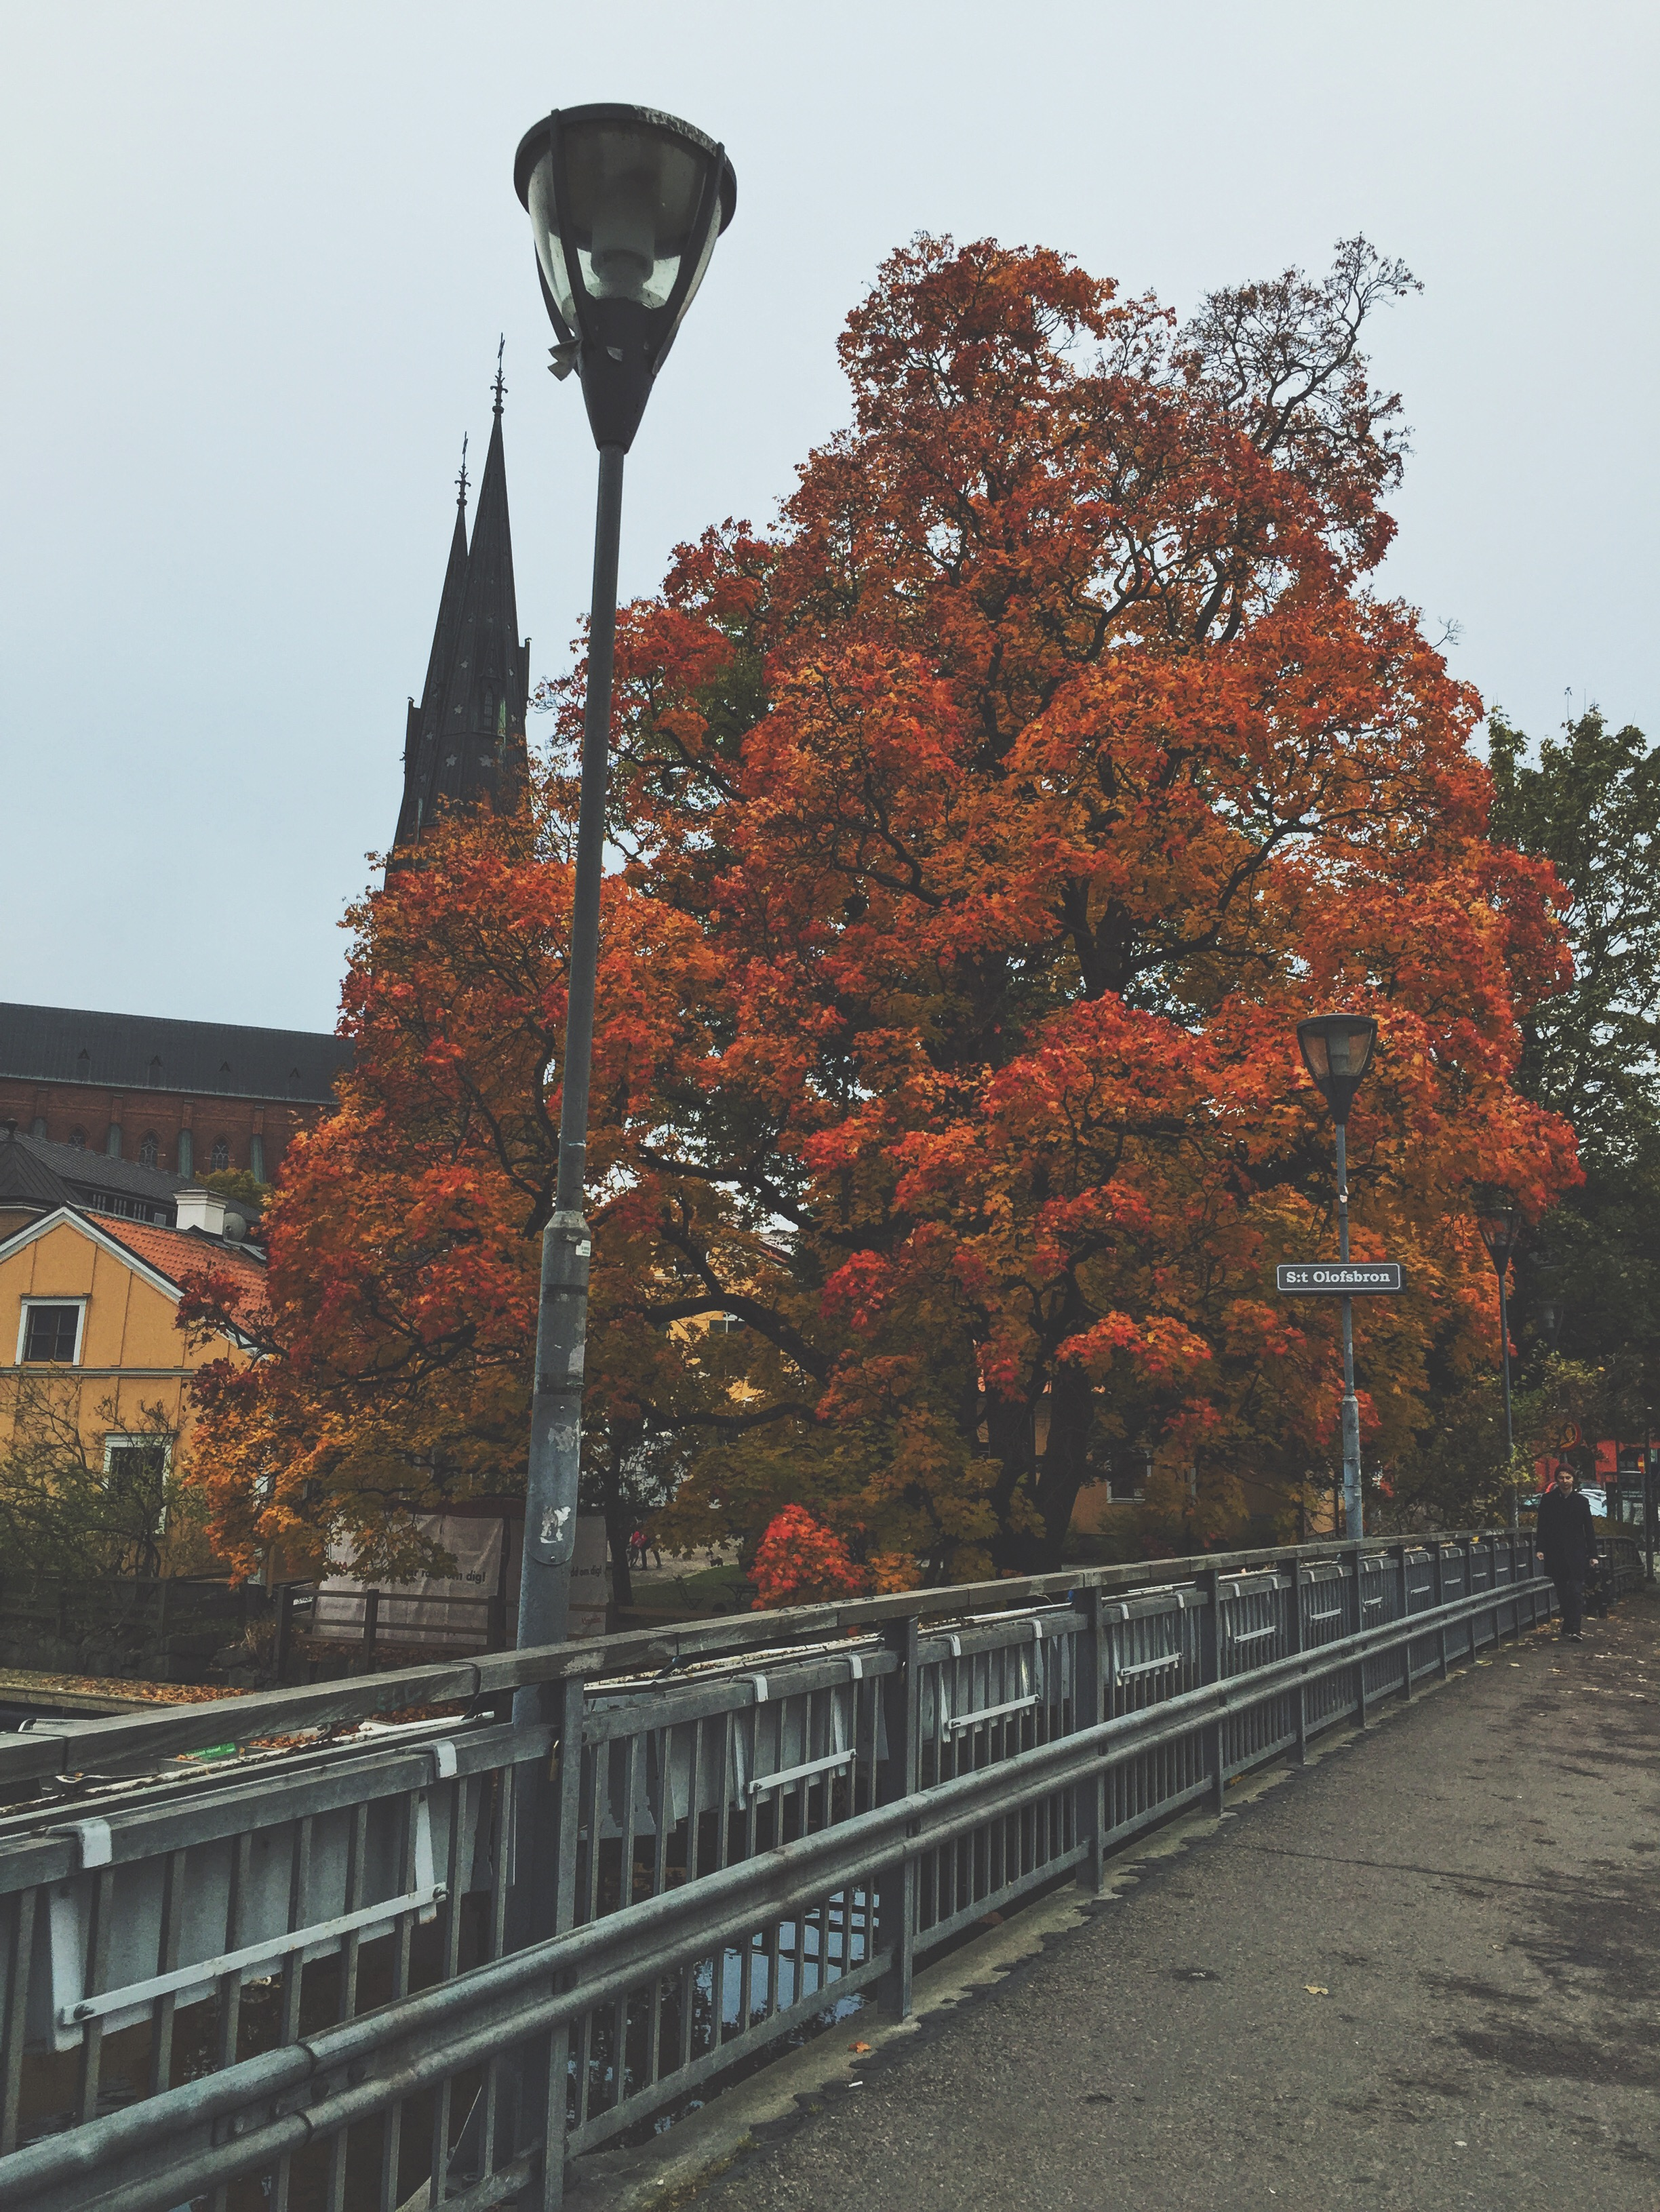 Fall foliage on one of the main streets in Uppsala.